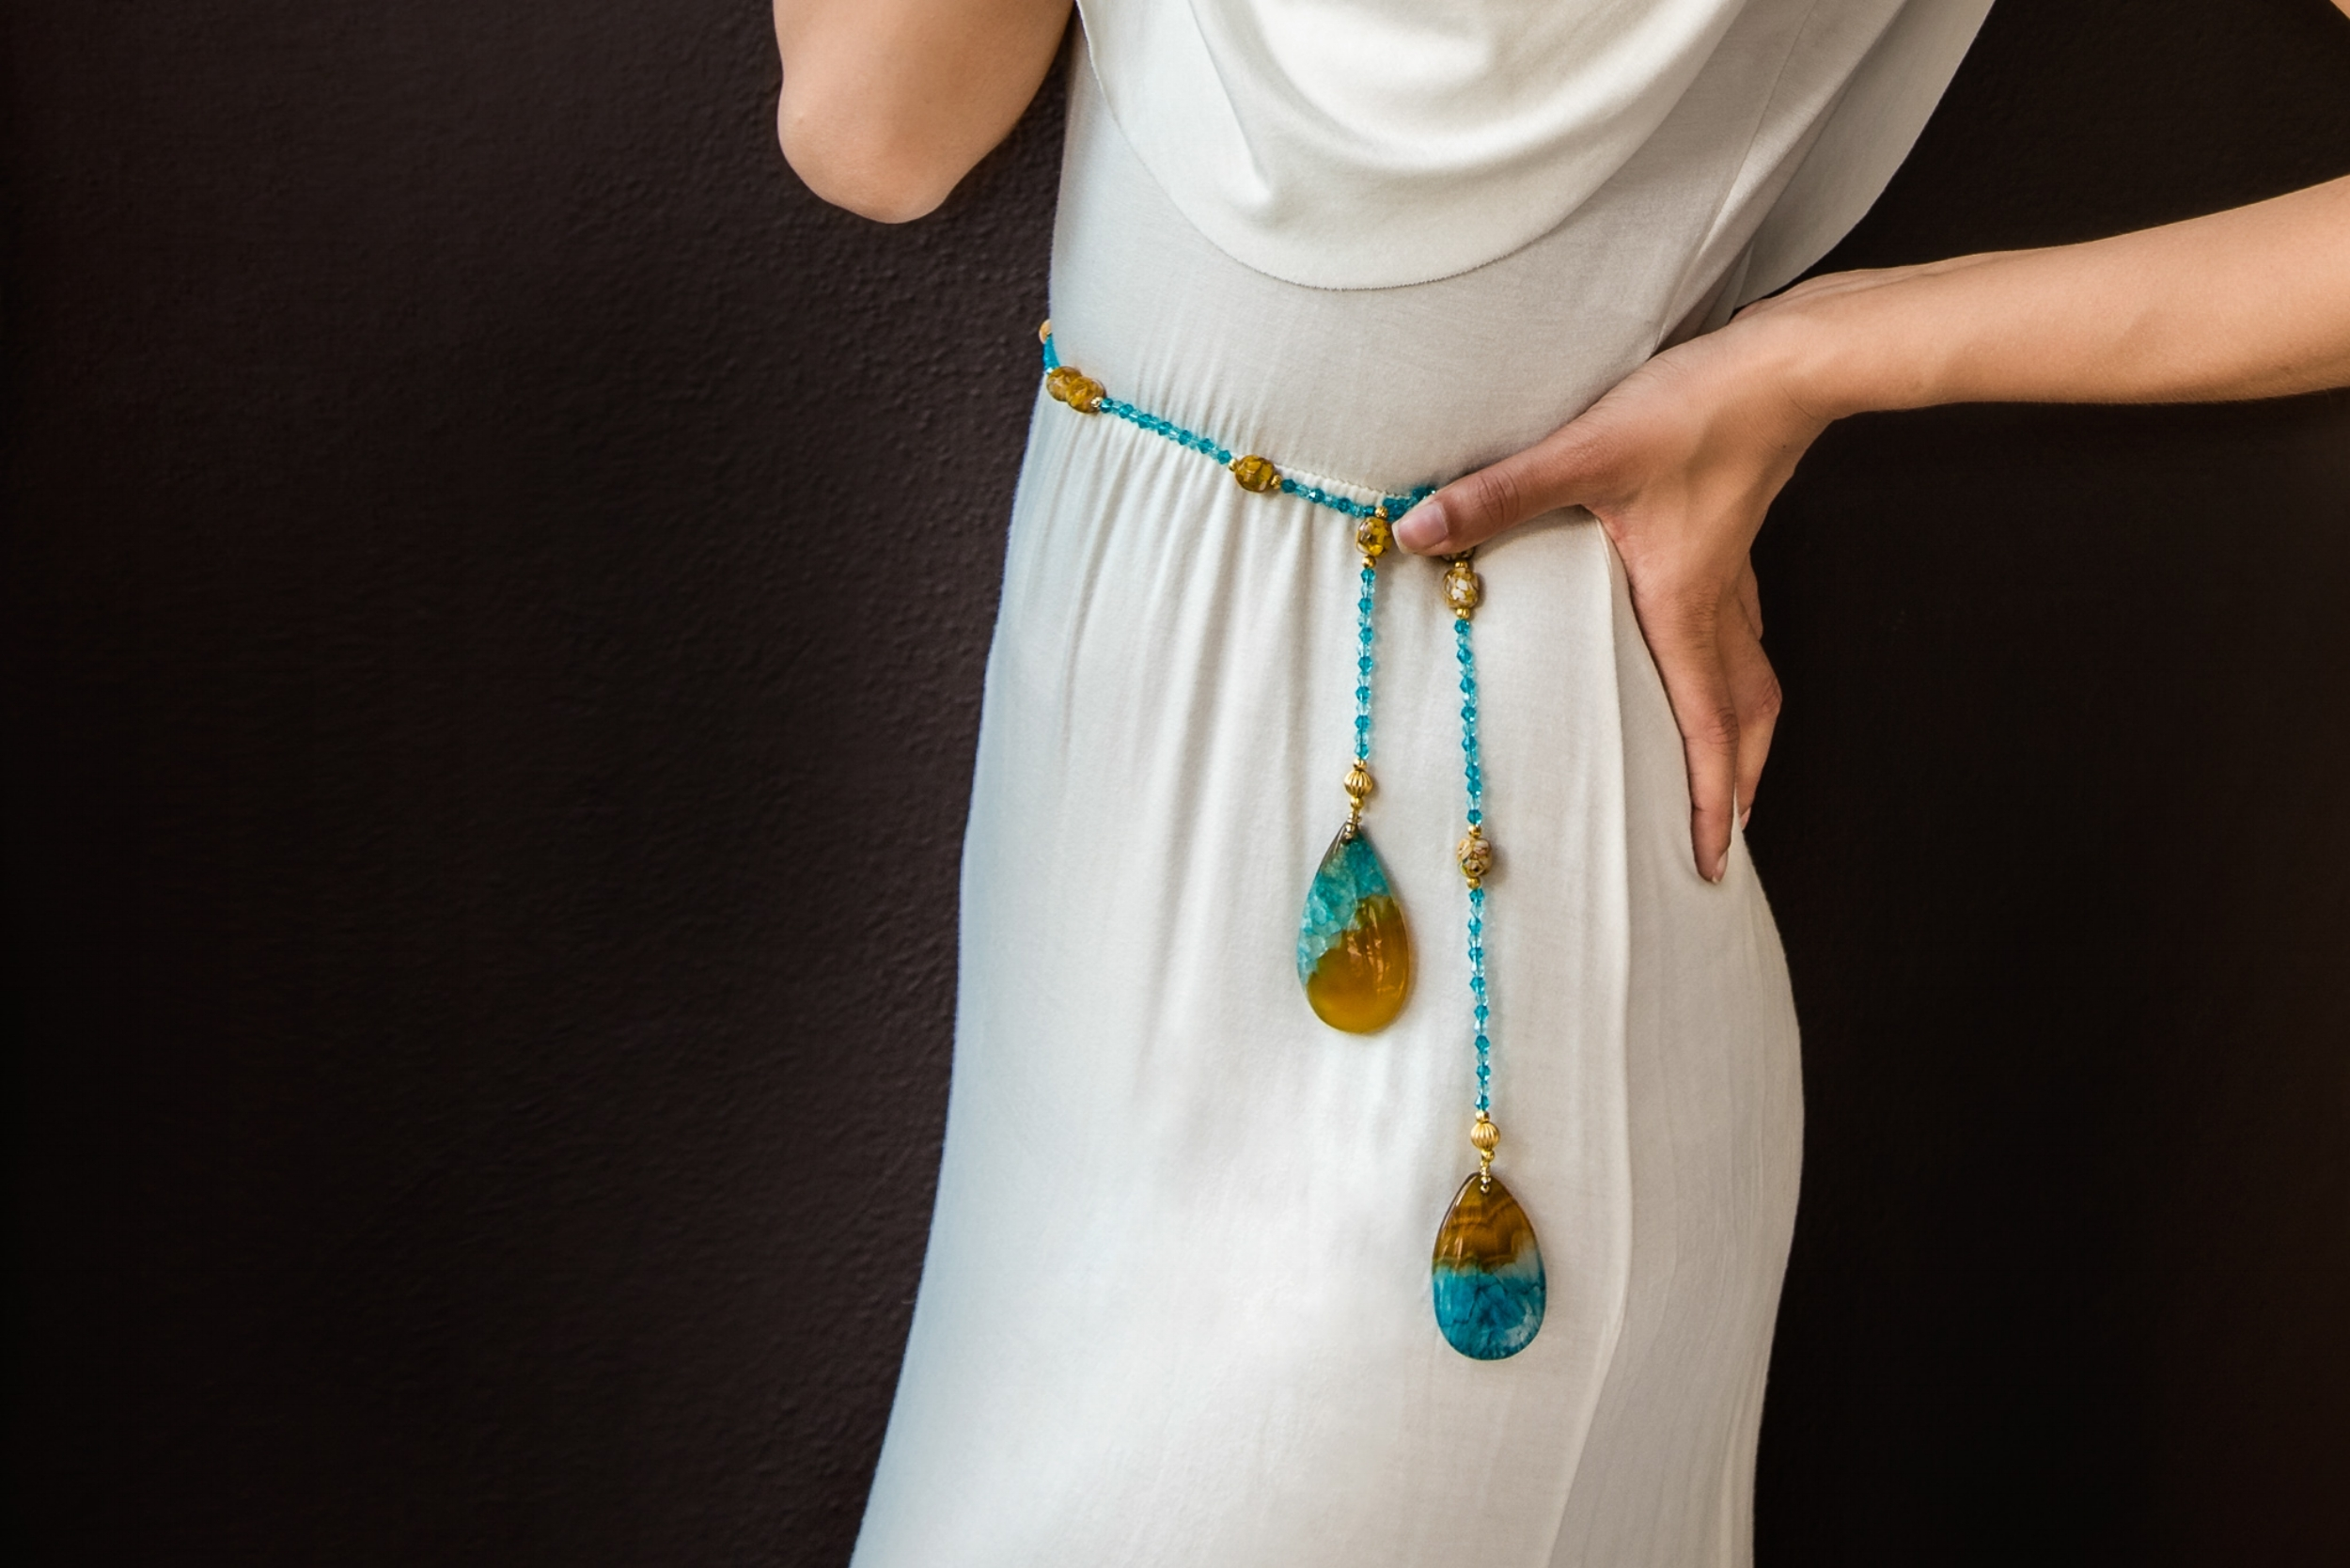 'Multi-Functional' by CiCi - With two styles of necklaces exhibited here, one can find necklaces for all occasions and functions.Wrap-Arounds / Ties start from £95.00Necklaces / Glasses Holders start from £45.99